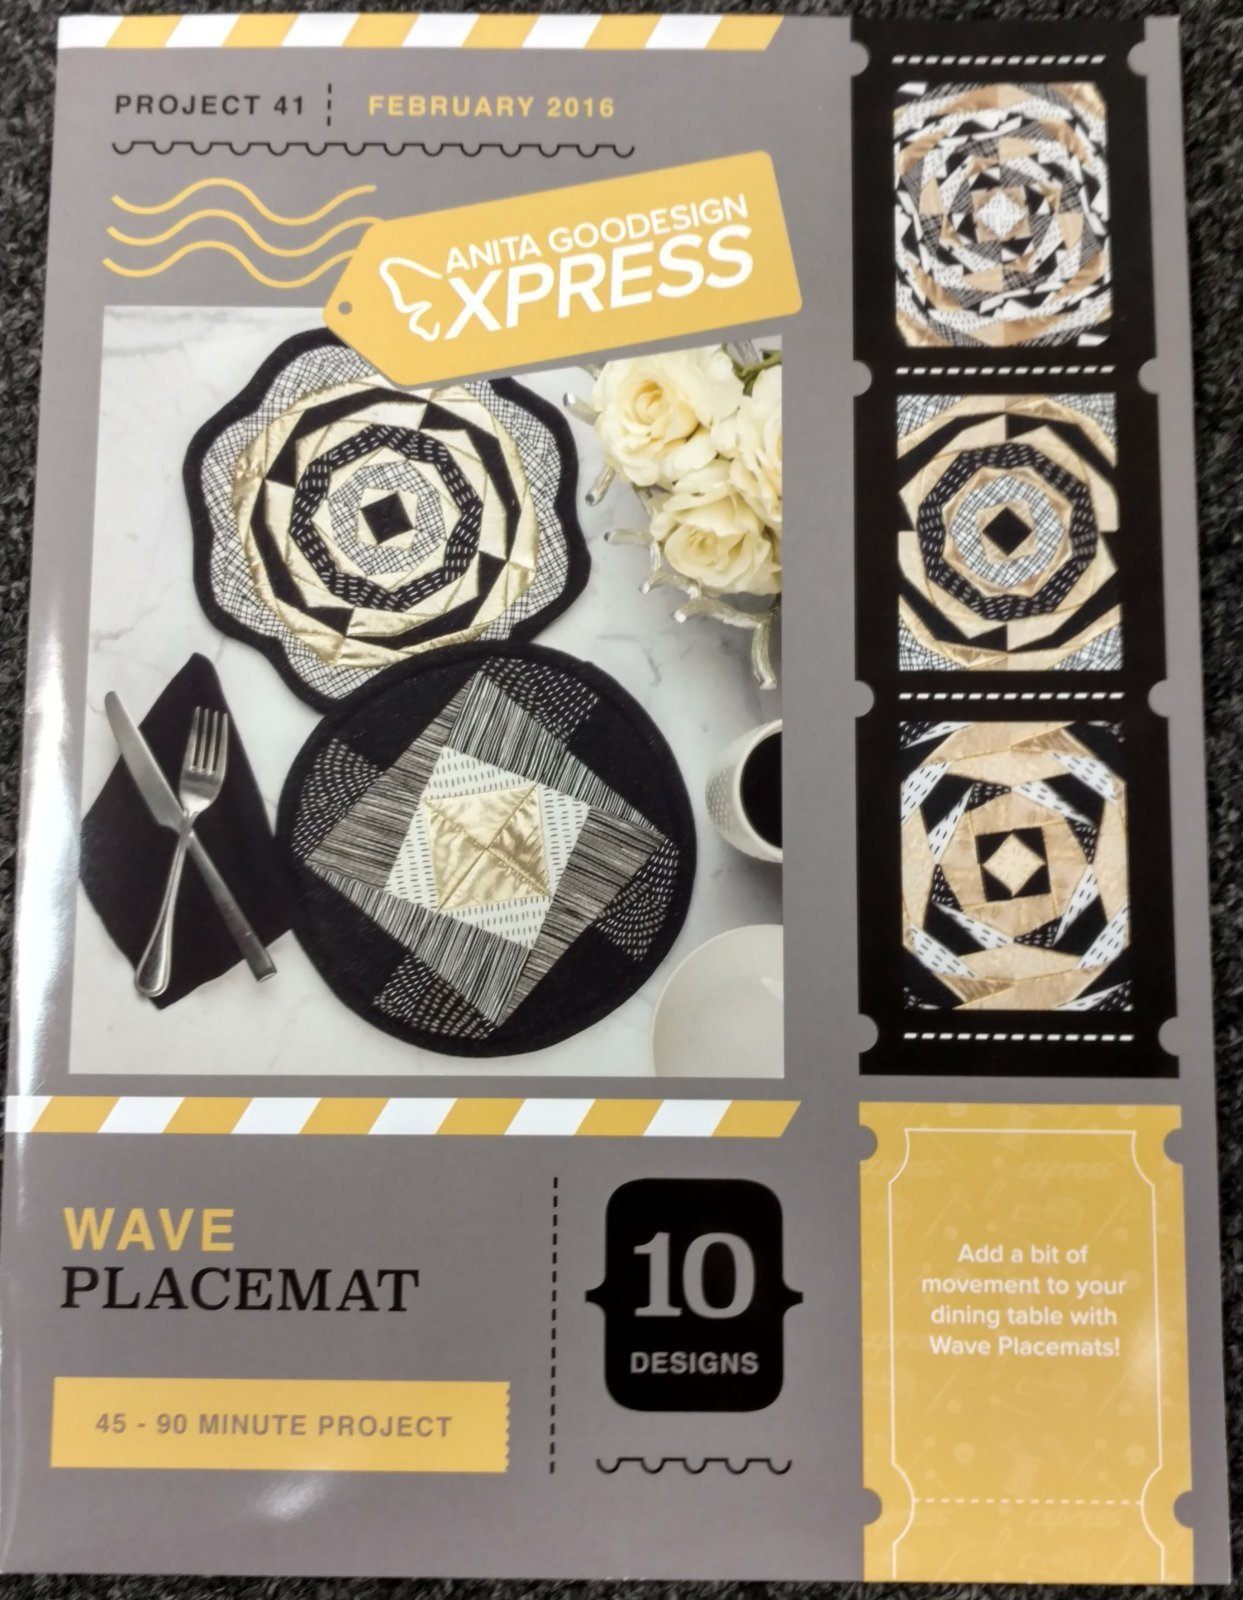 Anita Goodesign - Express #41 - Wave Placemat